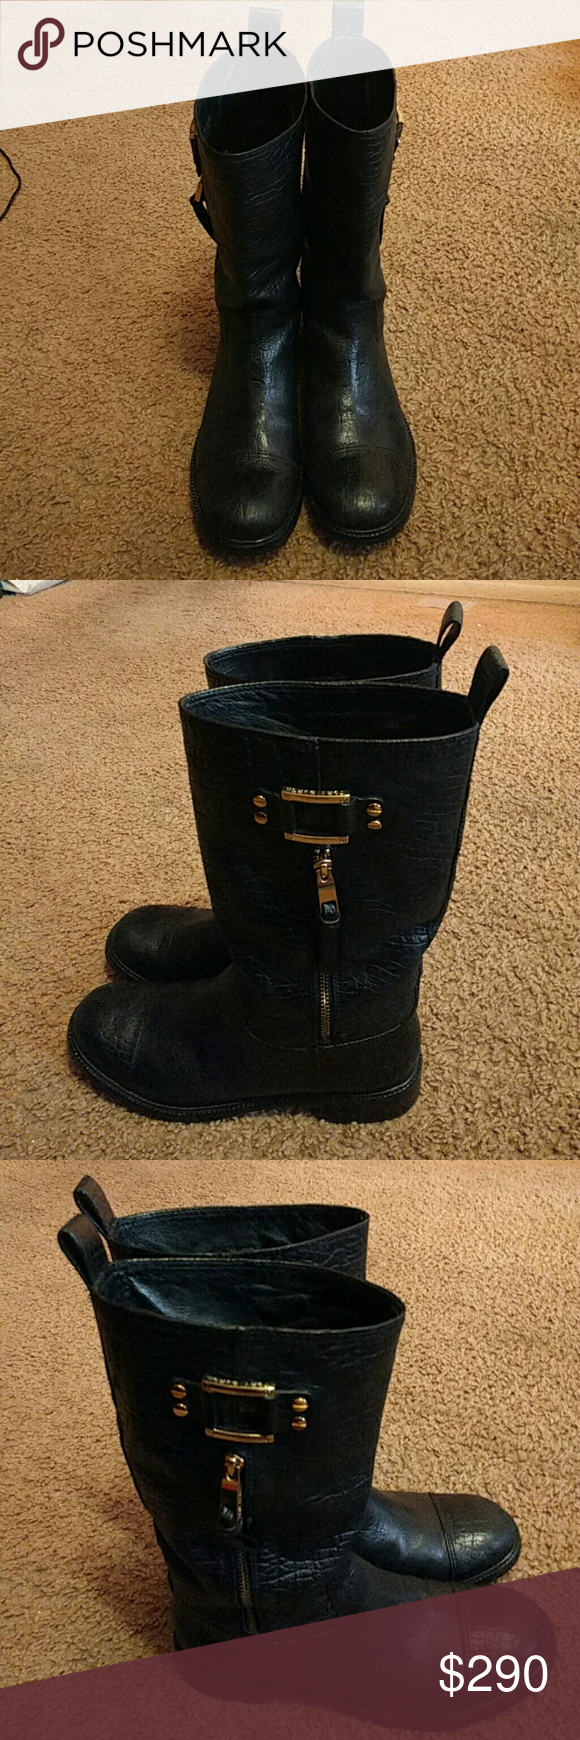 08102ffc1b7 Tory Burch Stowe moto black gold boots 10.5 EUC I bought these Tory Burch  motorcycle boots (Stowe) but unfortunately I m more of a 9.5 than a 10.5 -  I ...